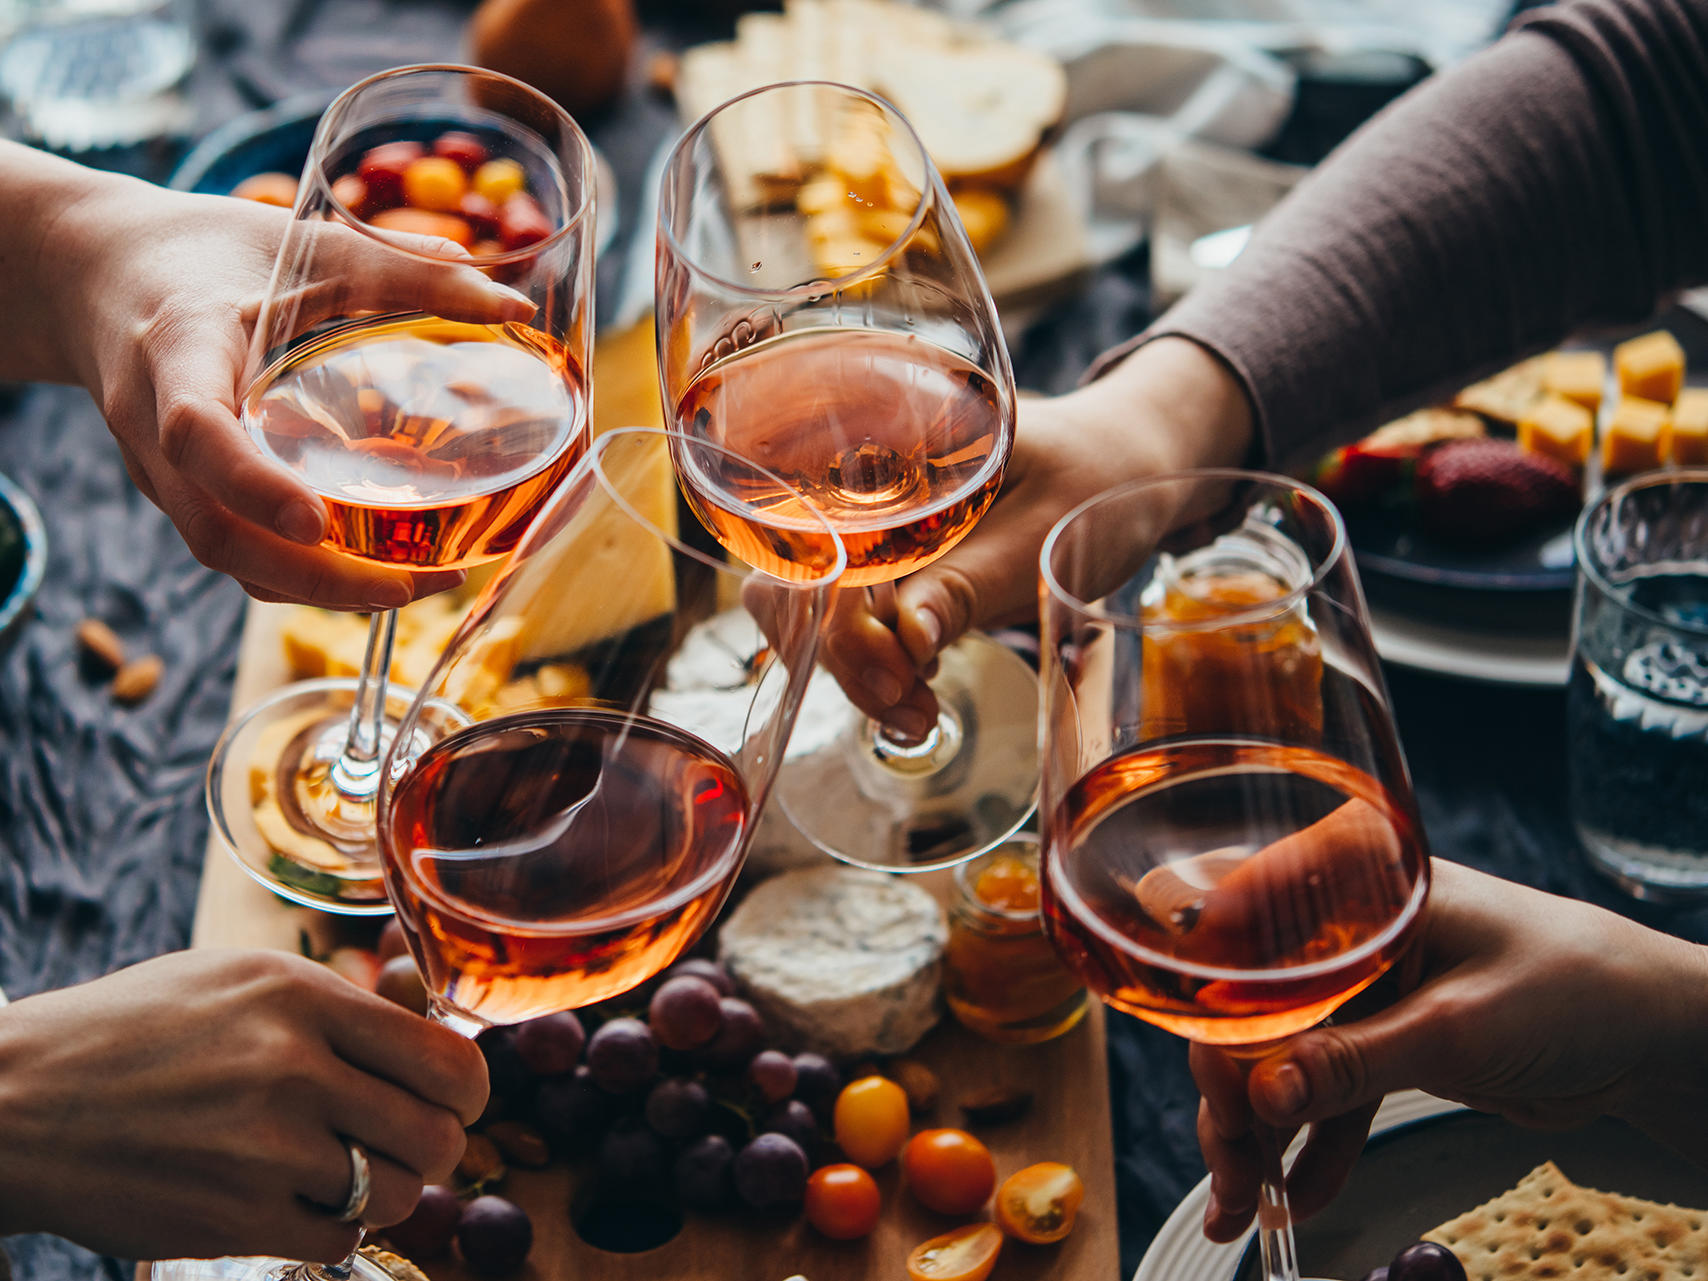 Glasses of rose wine seen during  party at The Time New York